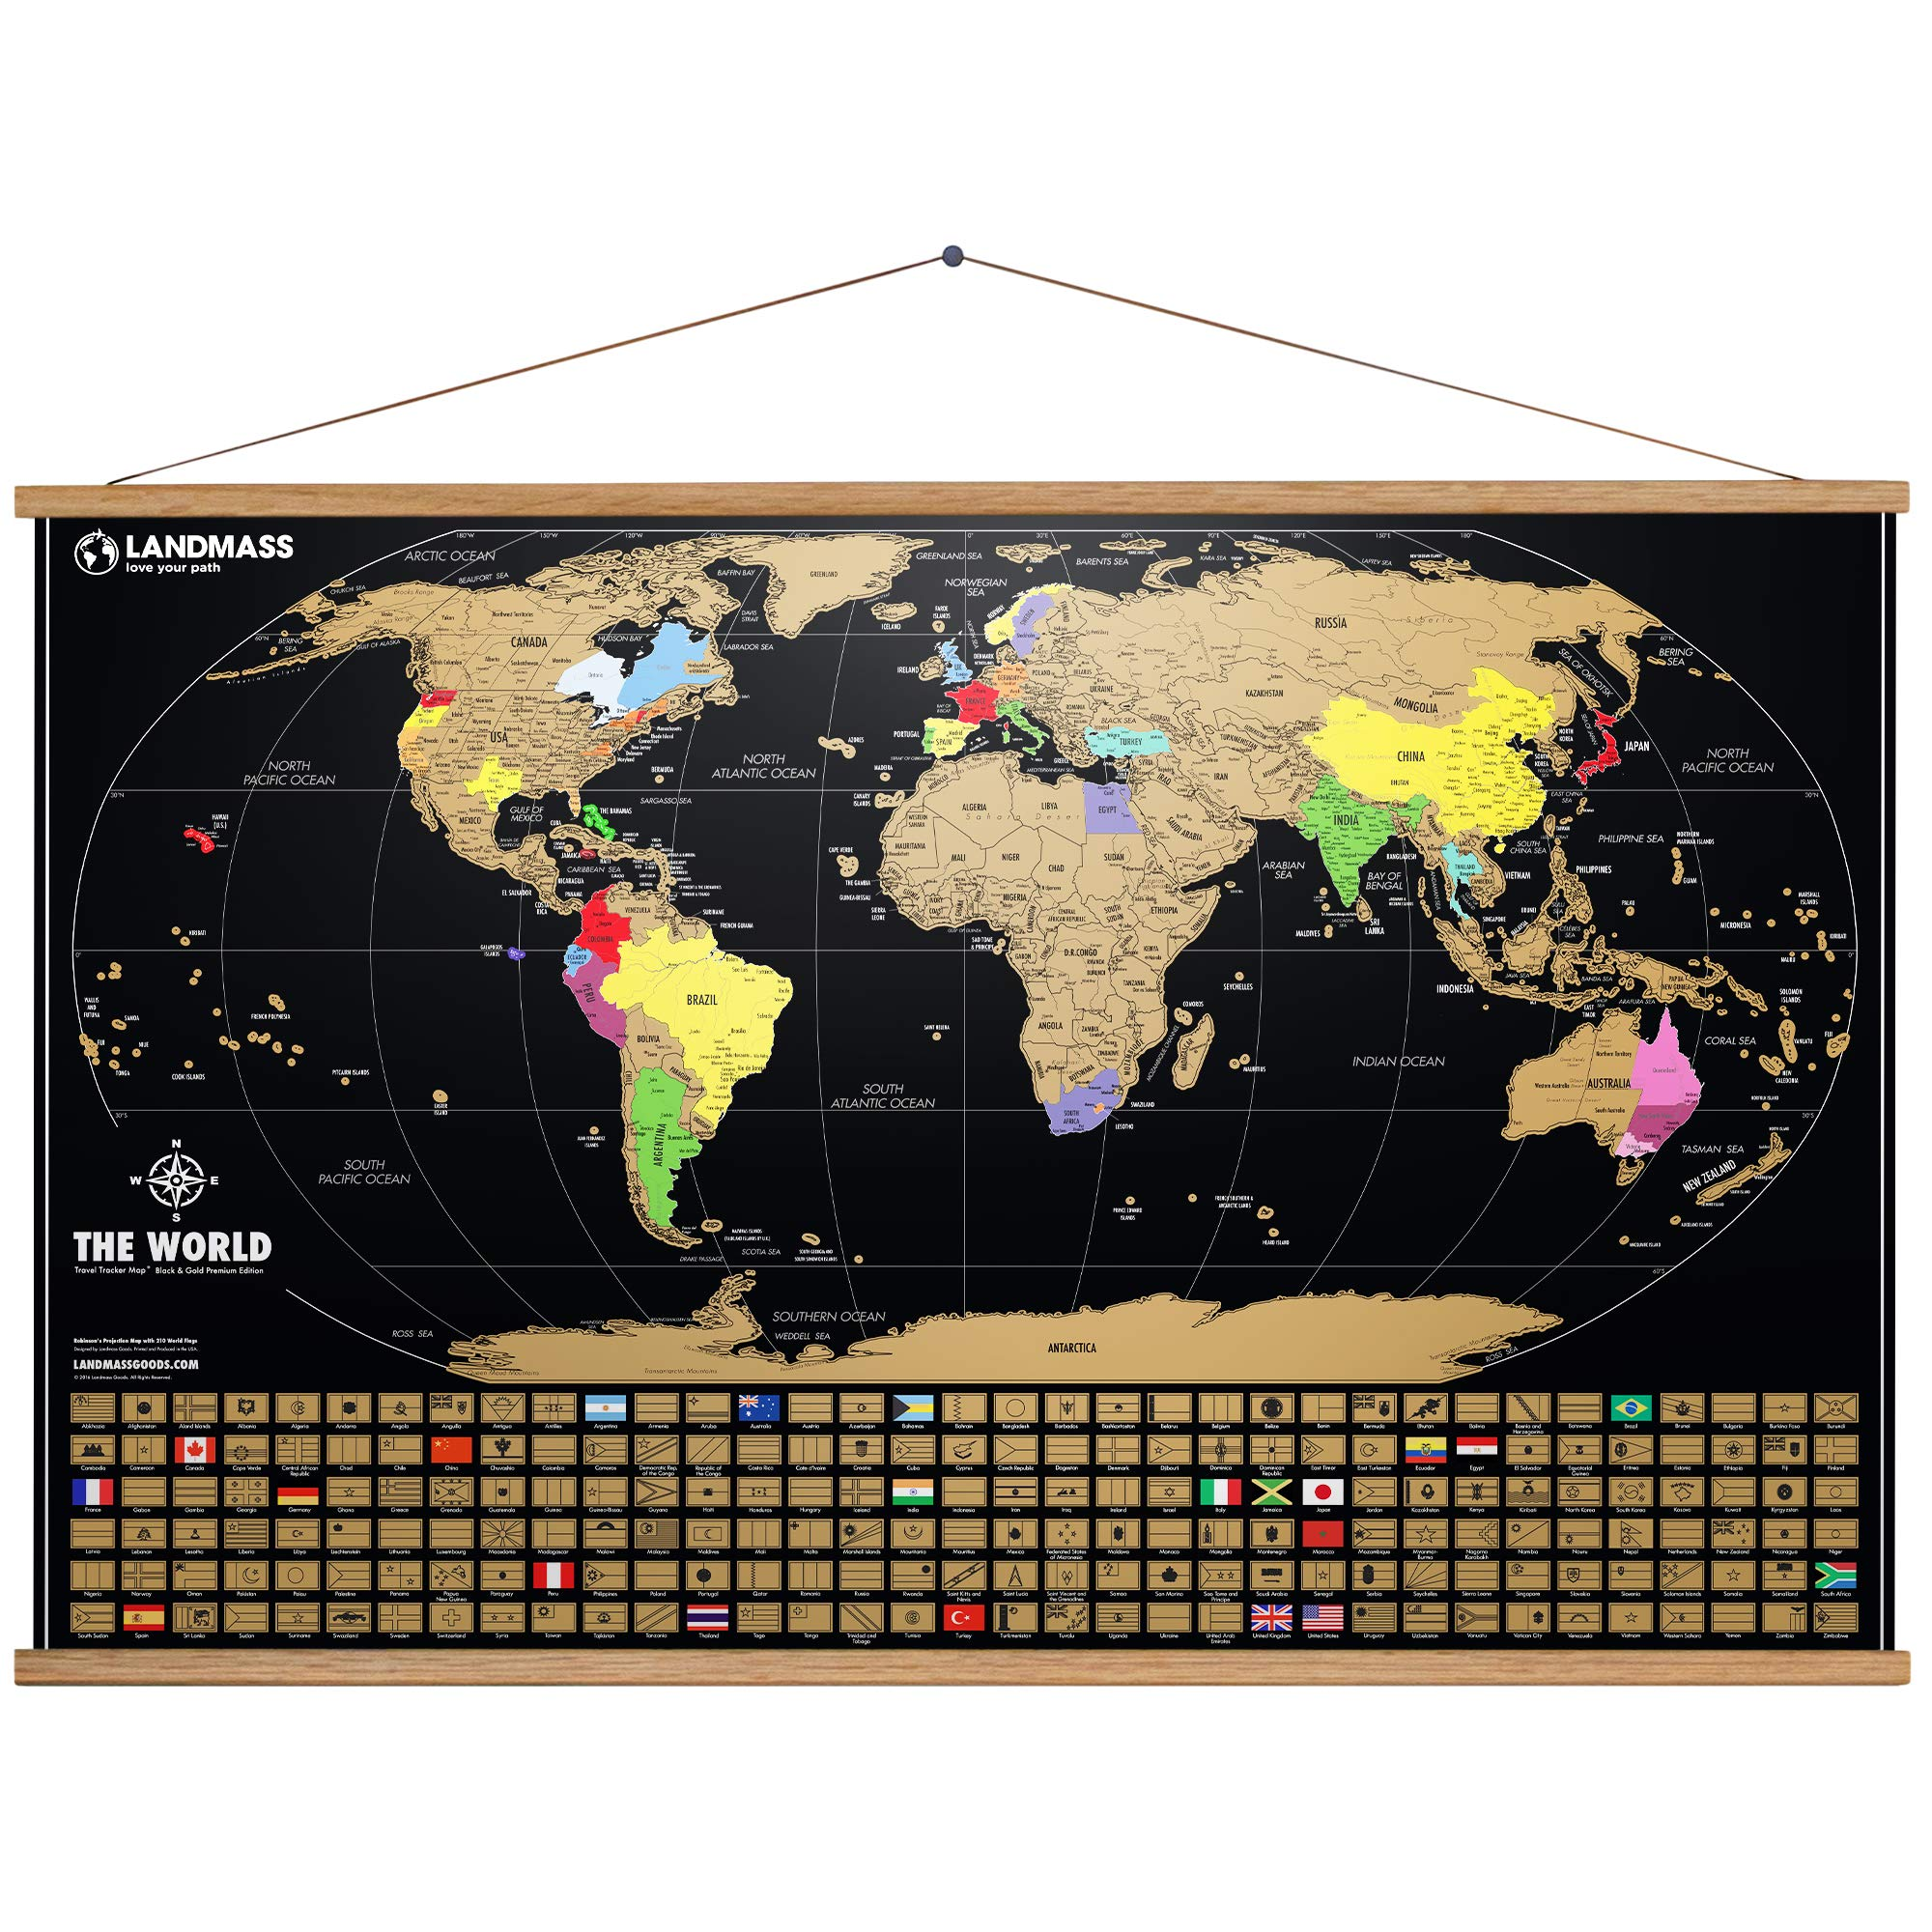 Landmass Extra Large Scratch Off Map of The World with Frame - 24 x 36 World Map Poster - Made in The USA - Travel Map - 36 Inch Wide Frame Included - The Perfect Gift for Travelers